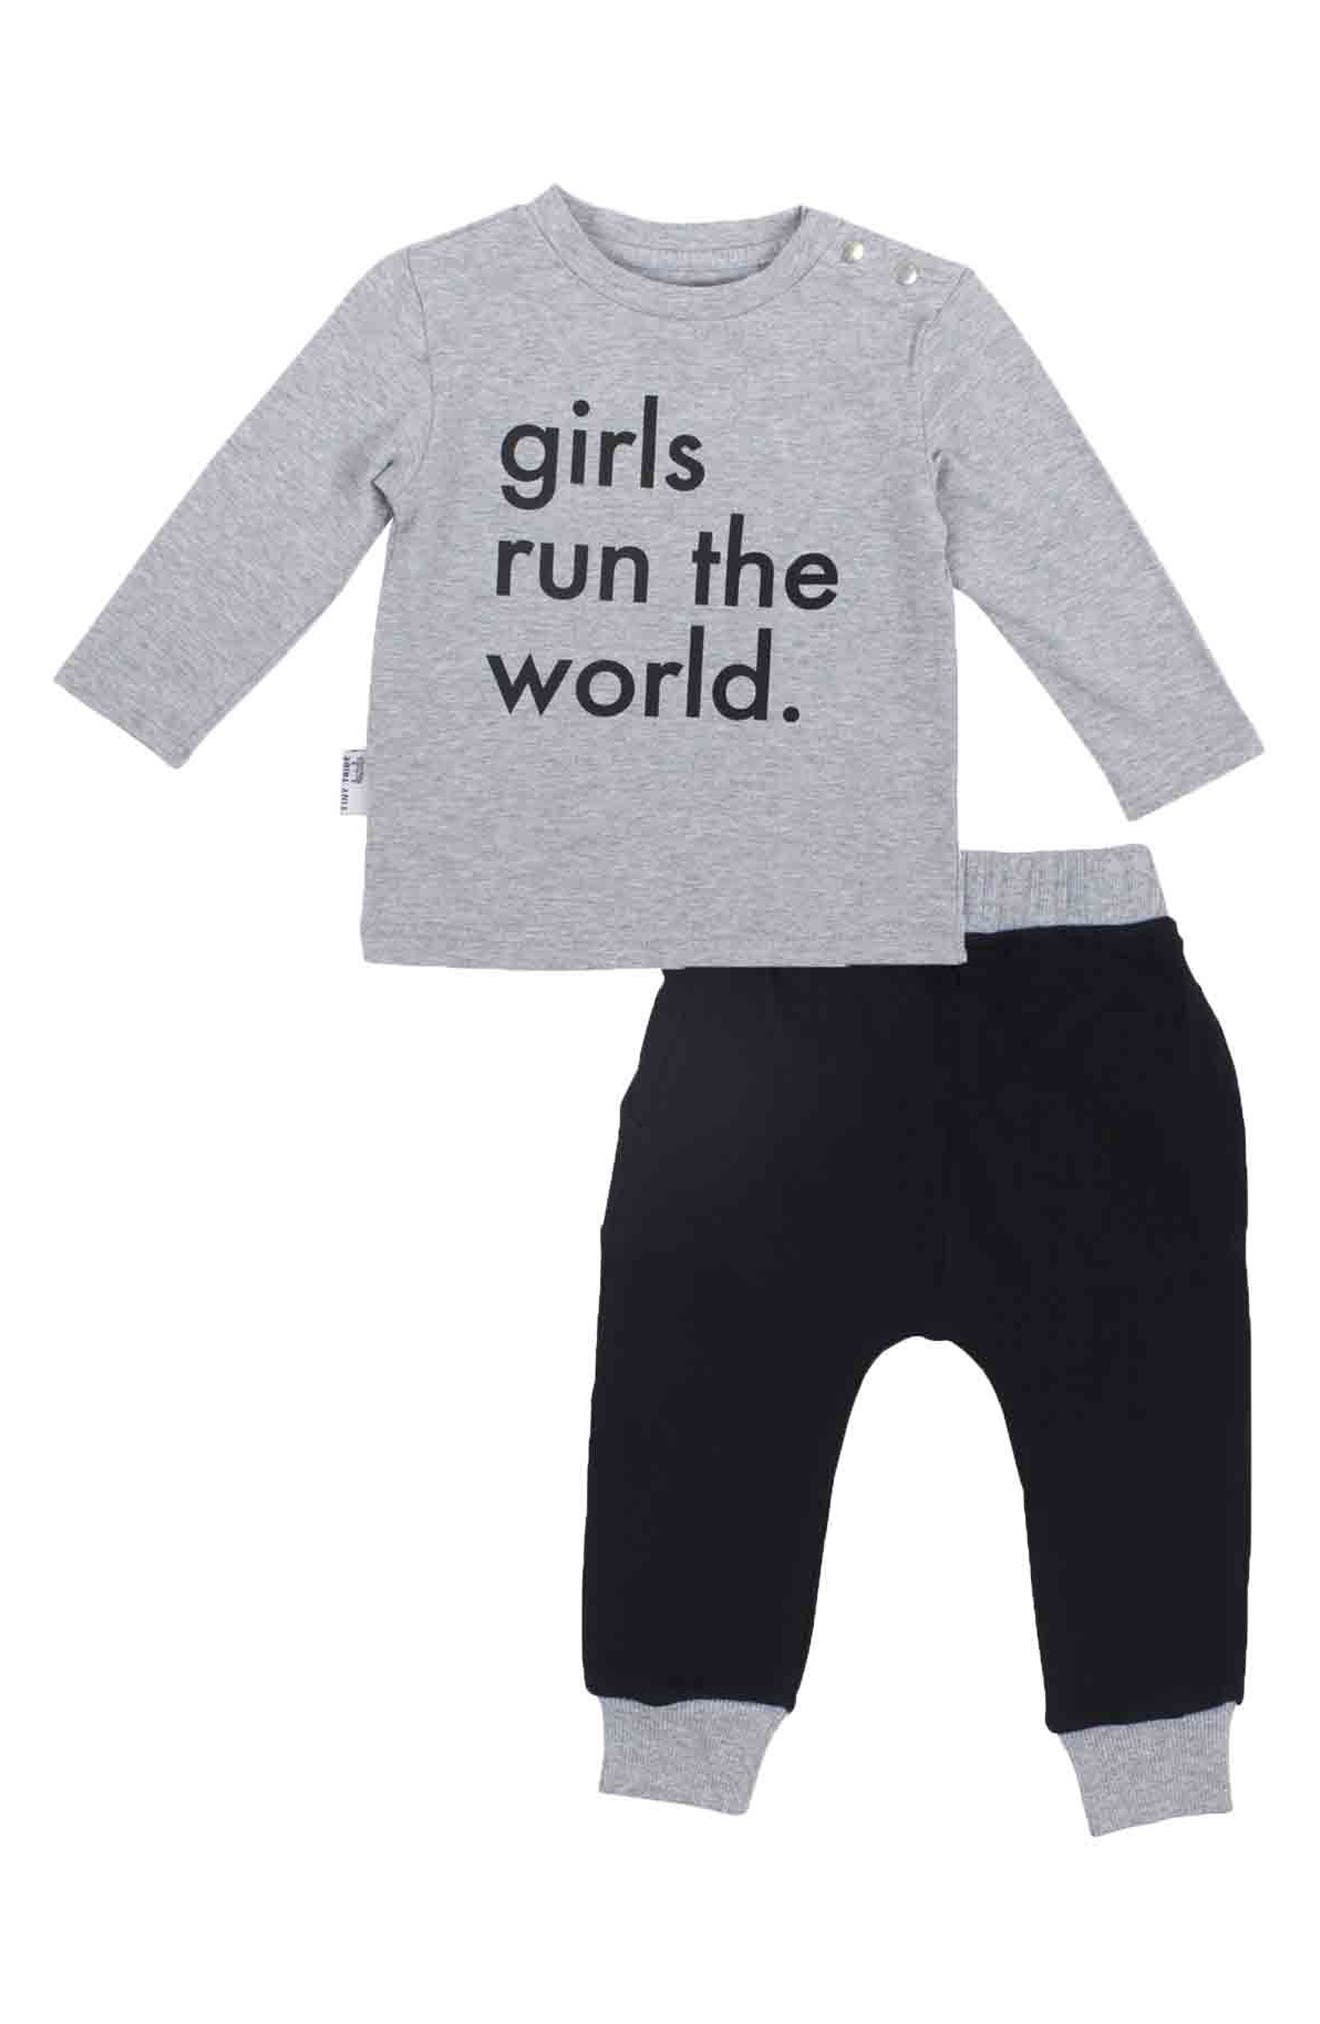 Main Image - Tiny Tribe Girls Run The World Tee & Jogger Pants Set (Baby Girls)